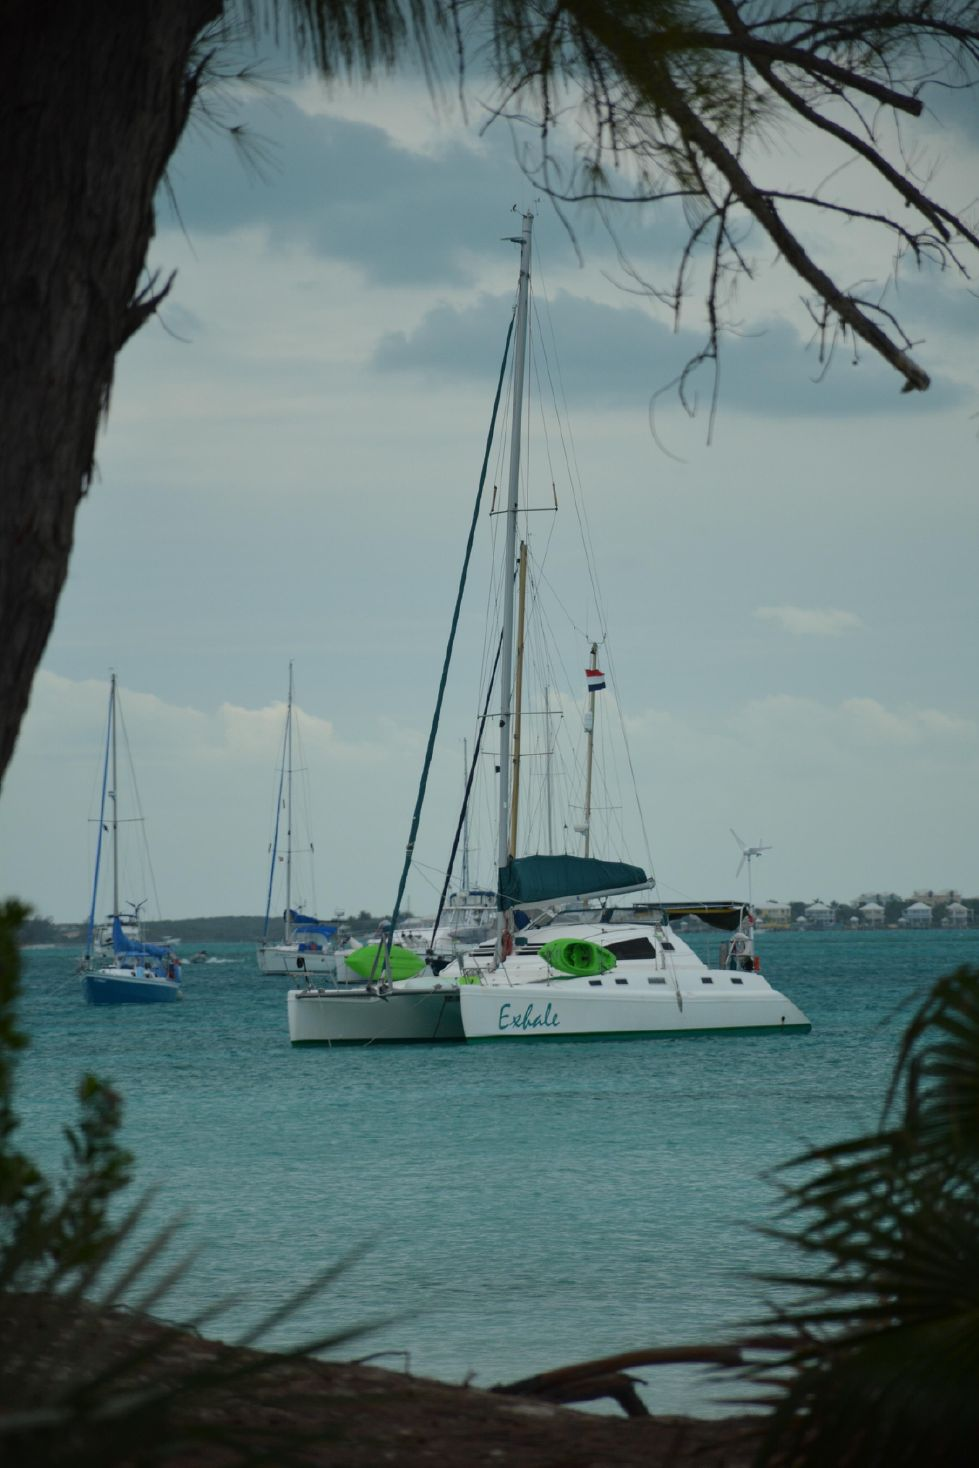 1999 Island Spirit 37 Catamaran - Exhale